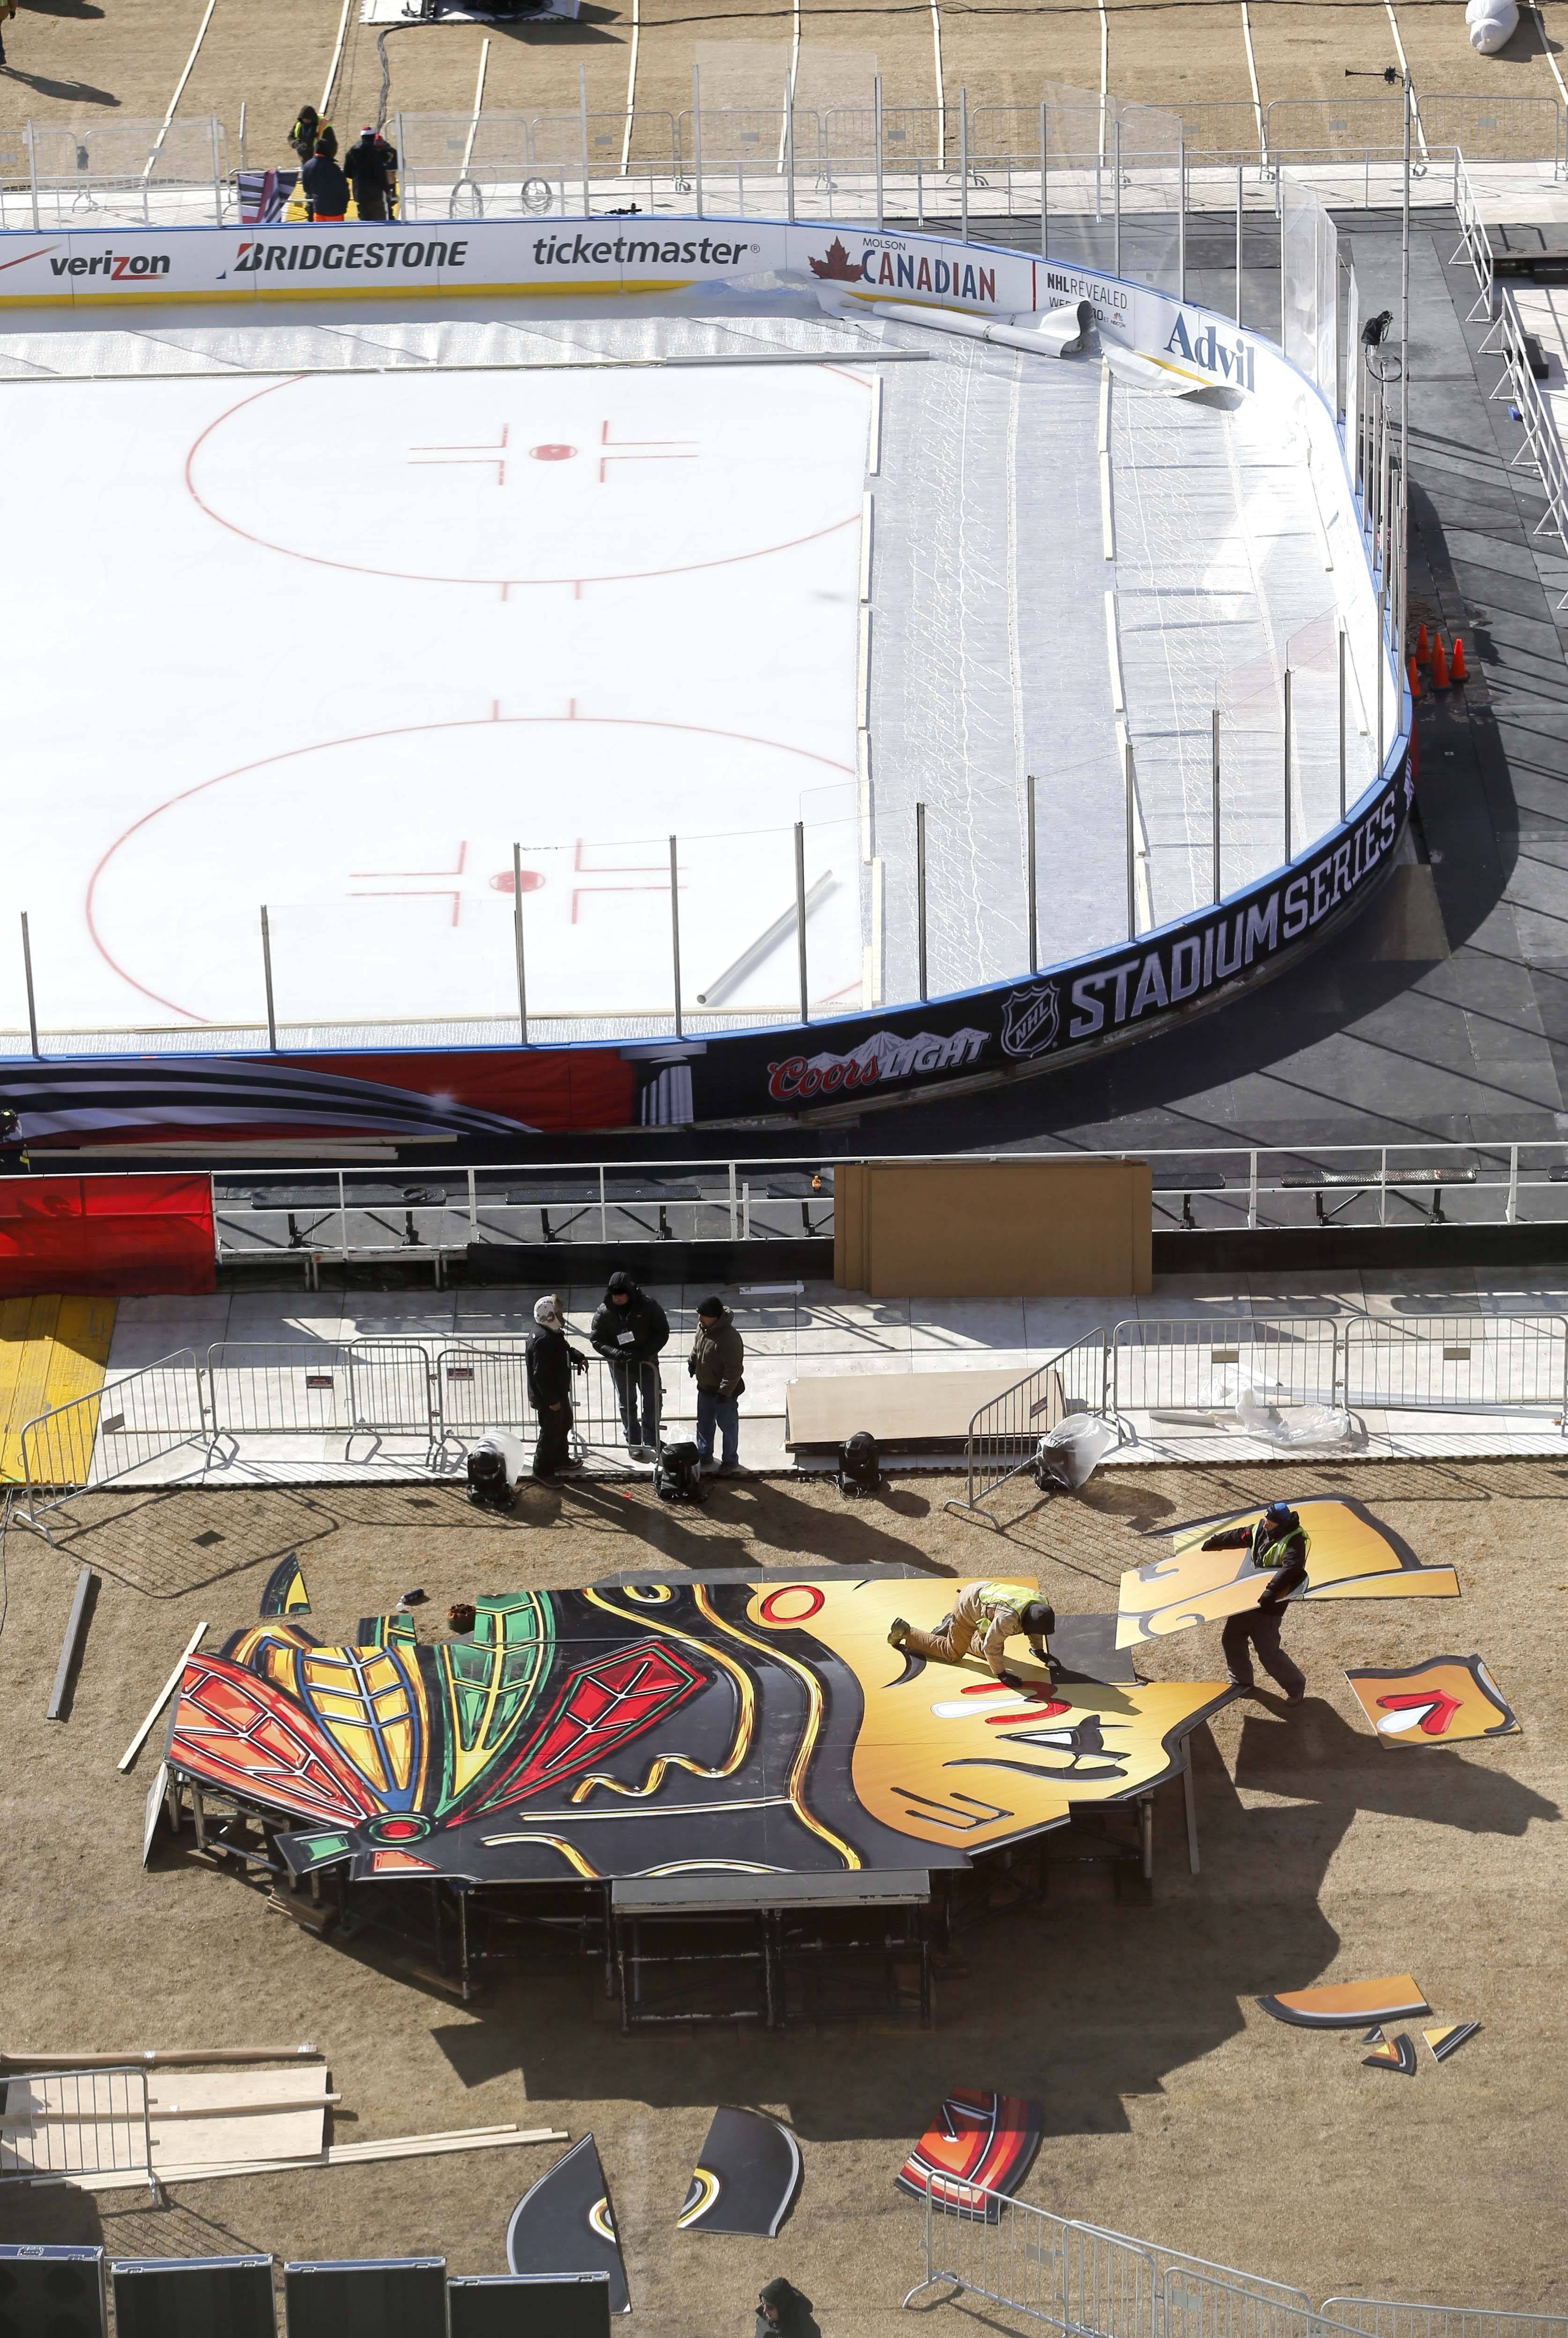 Workers construct a large Blackhawks logo Thursday as they continue to transform Soldier Field for Saturday's Stadium Series NHL hockey game between the Blackhawks and the Pittsburgh Penguins.